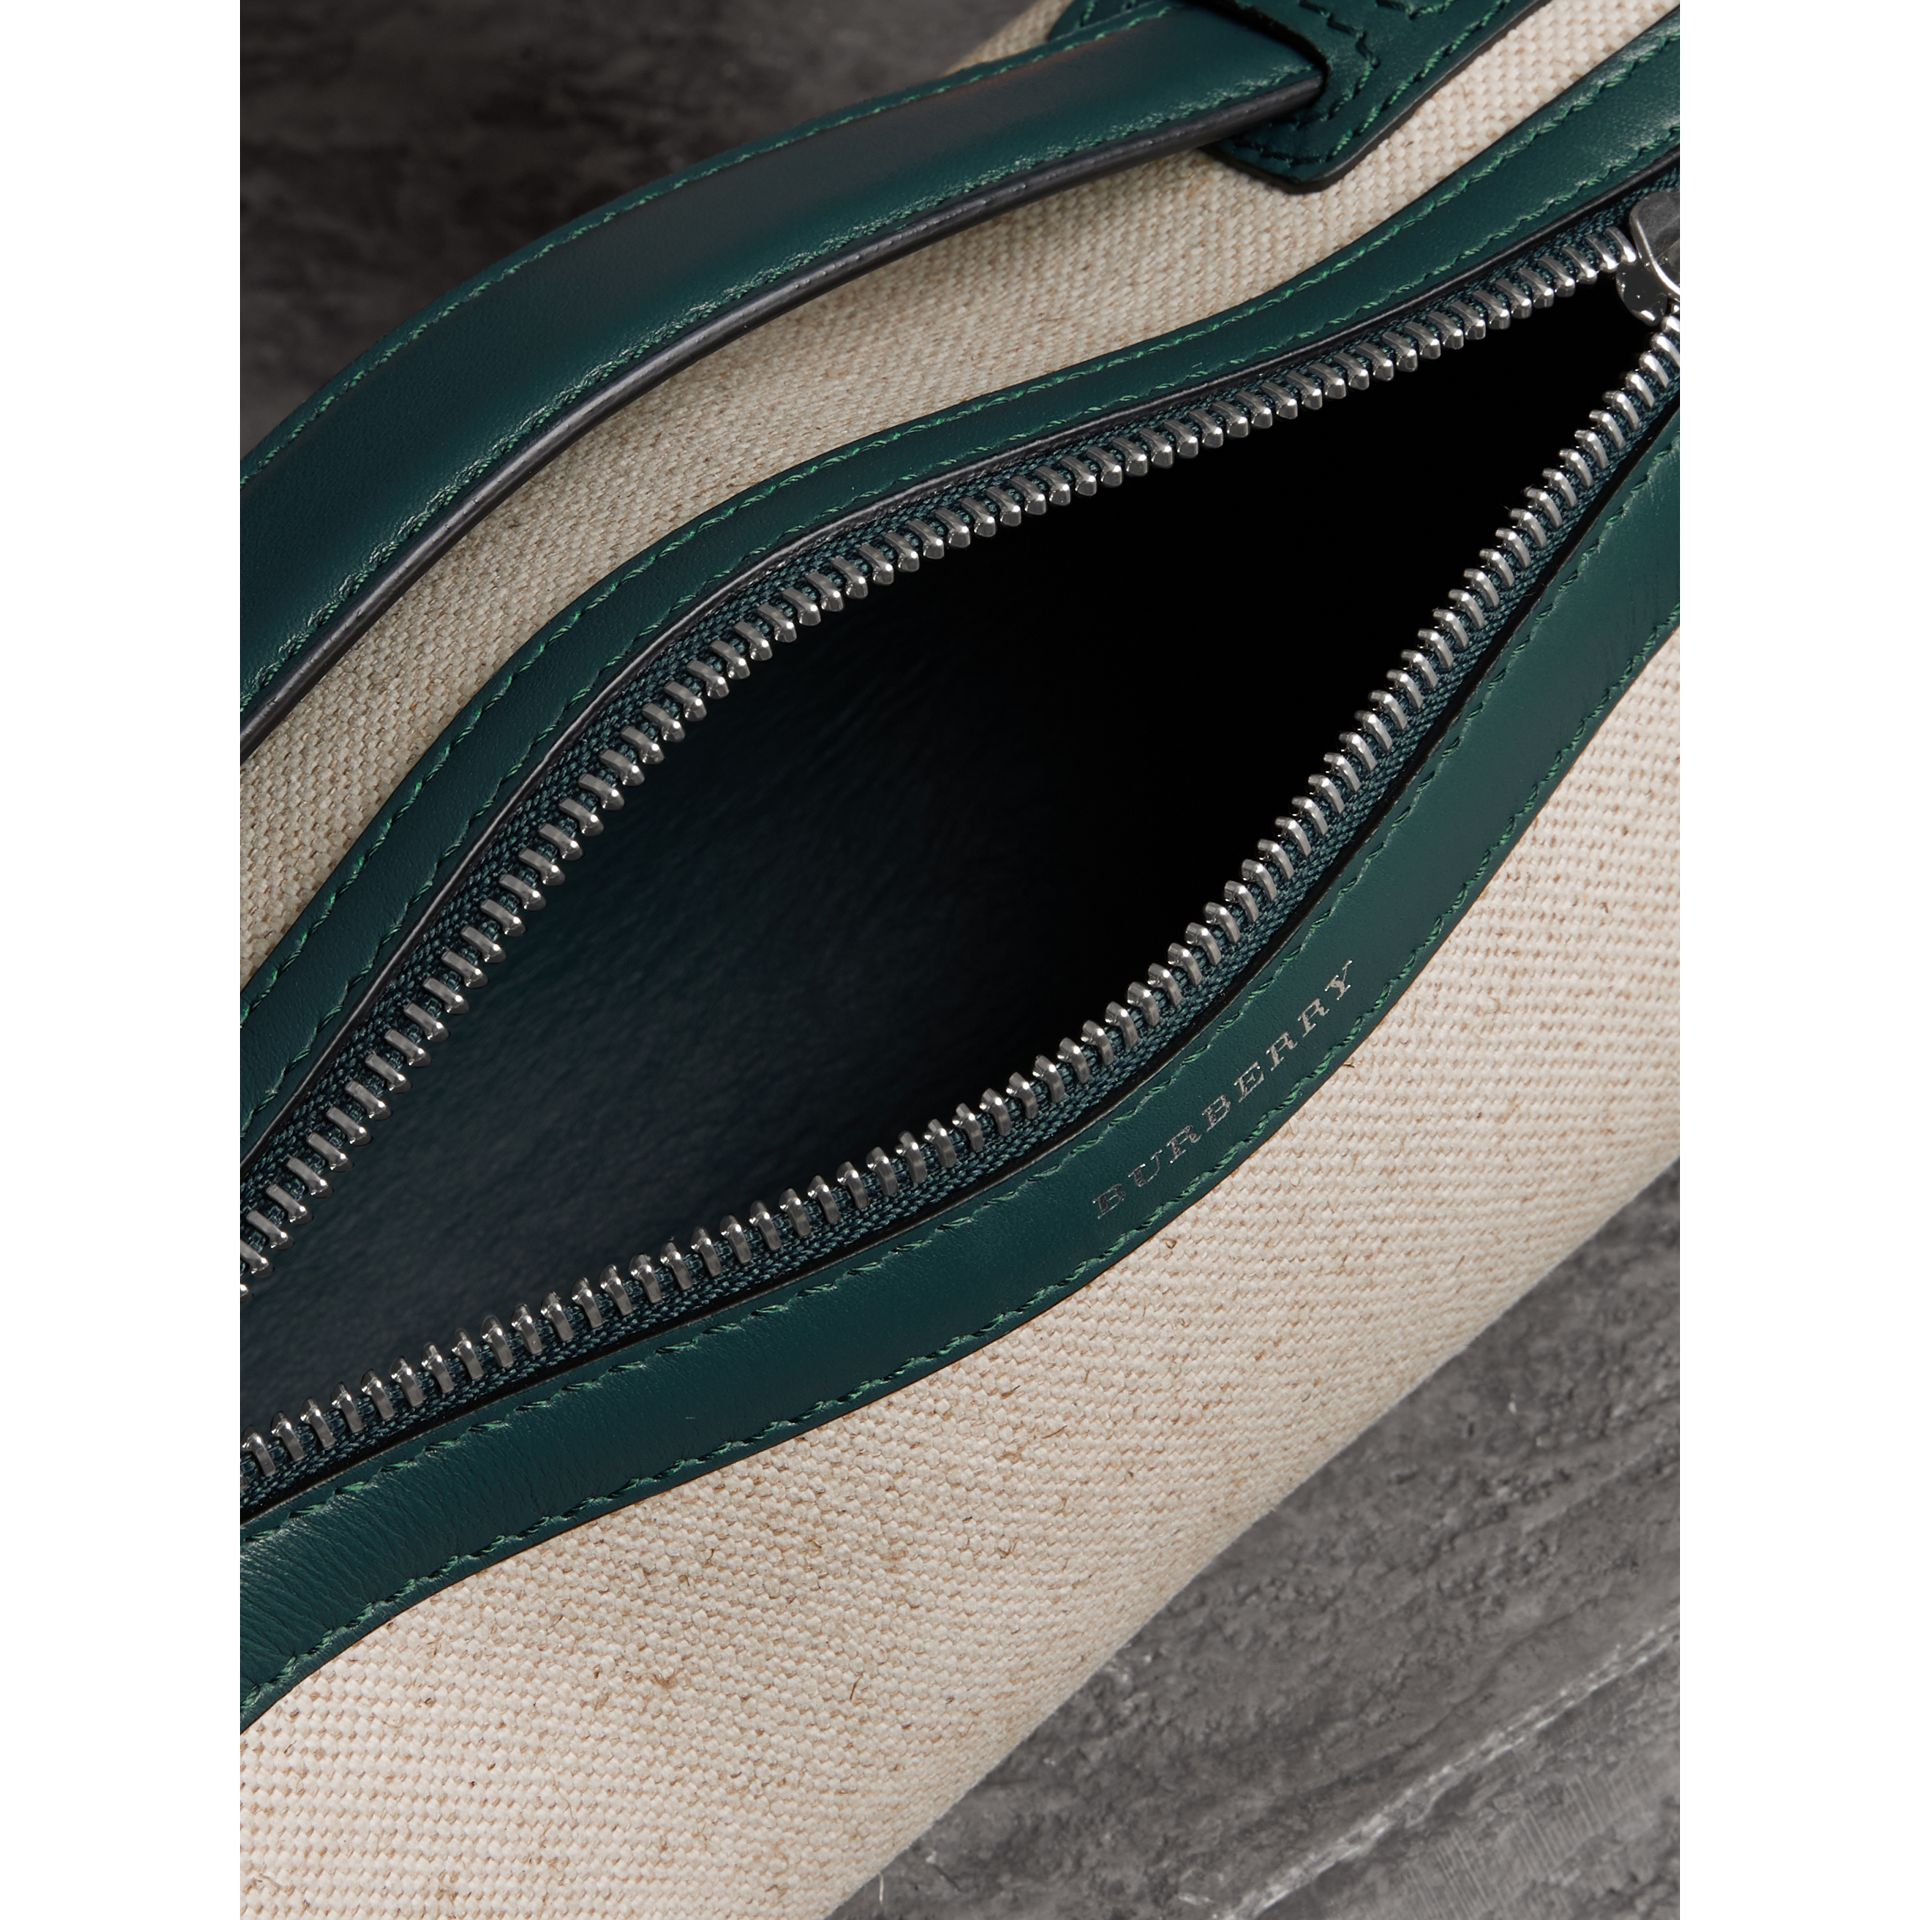 Sac The Barrel en cuir, coton et lin (Cyan Foncé) - Femme | Burberry - photo de la galerie 2